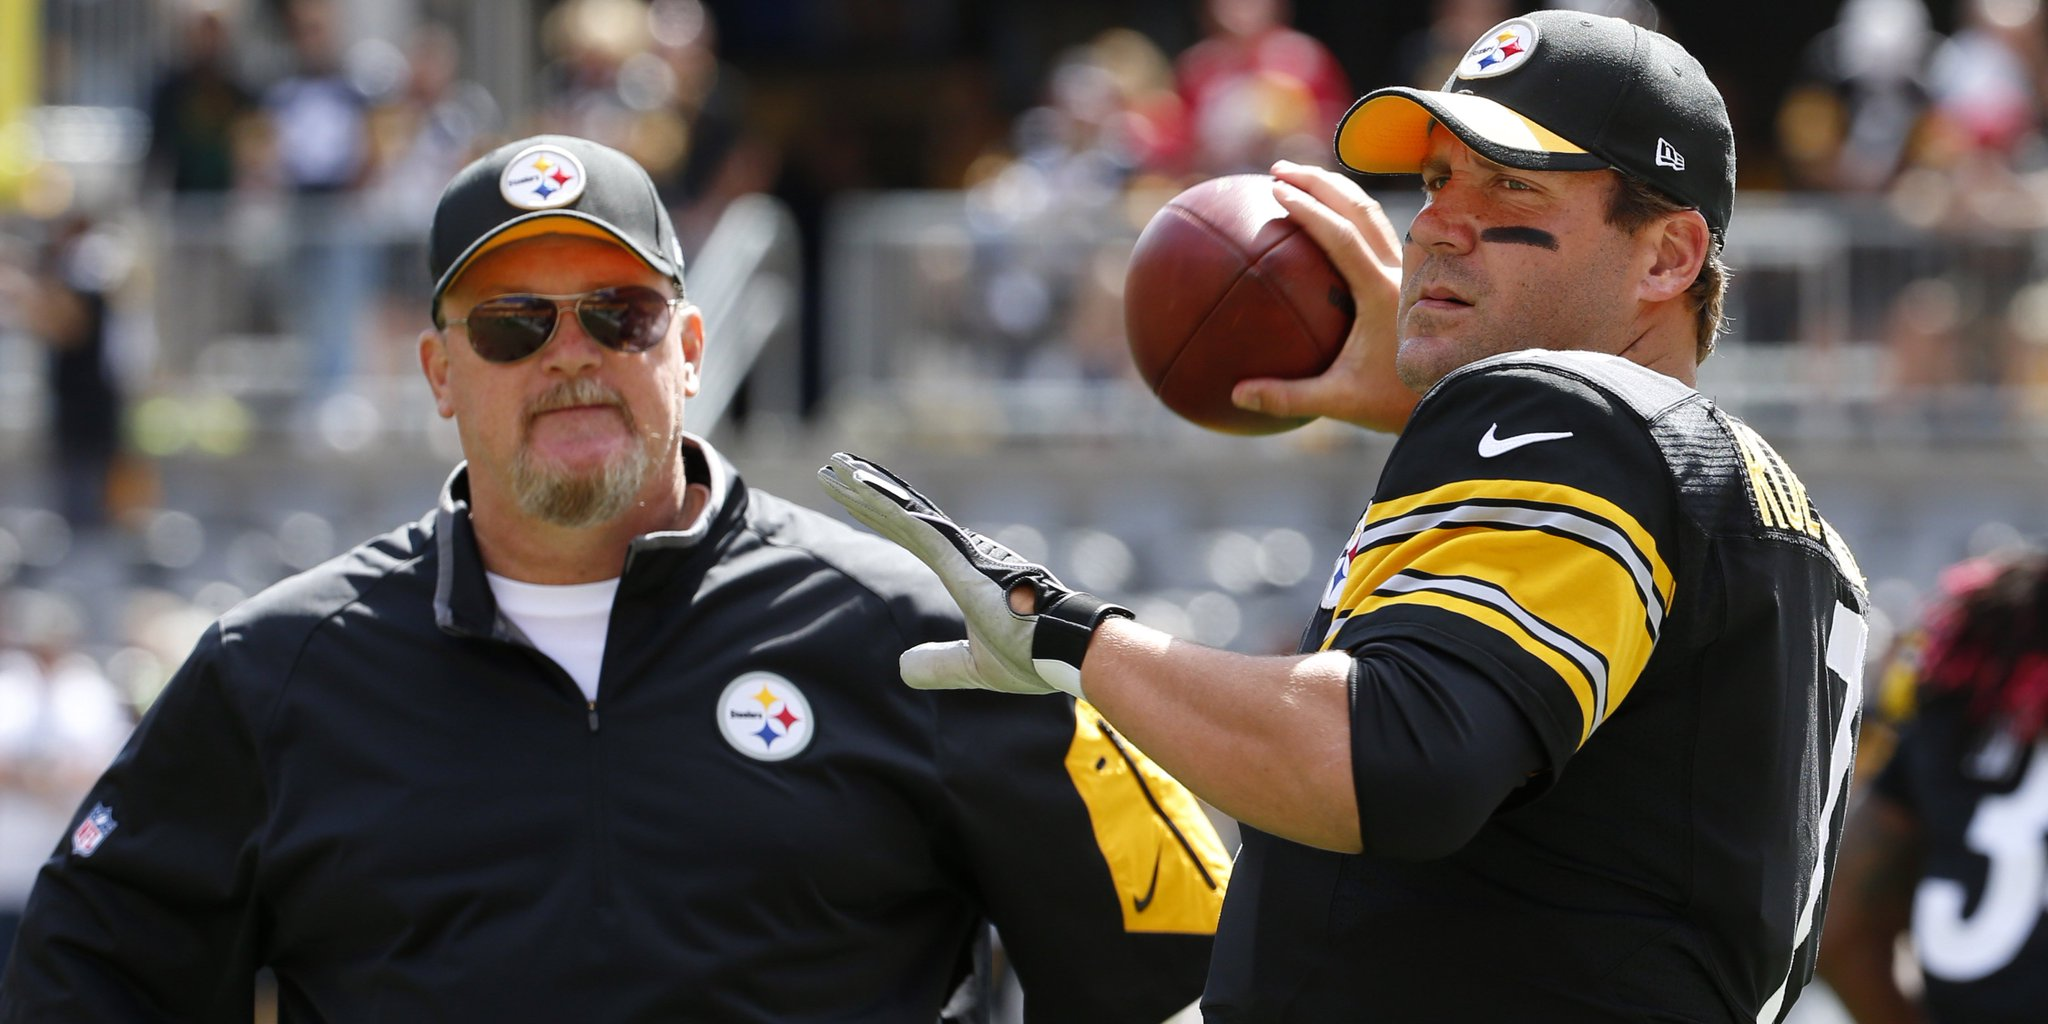 It's official: Randy Fichtner named Steelers offensive coordinator/quarterbacks coach https://t.co/55ZTJr3uo1 https://t.co/Jivt30wMRA